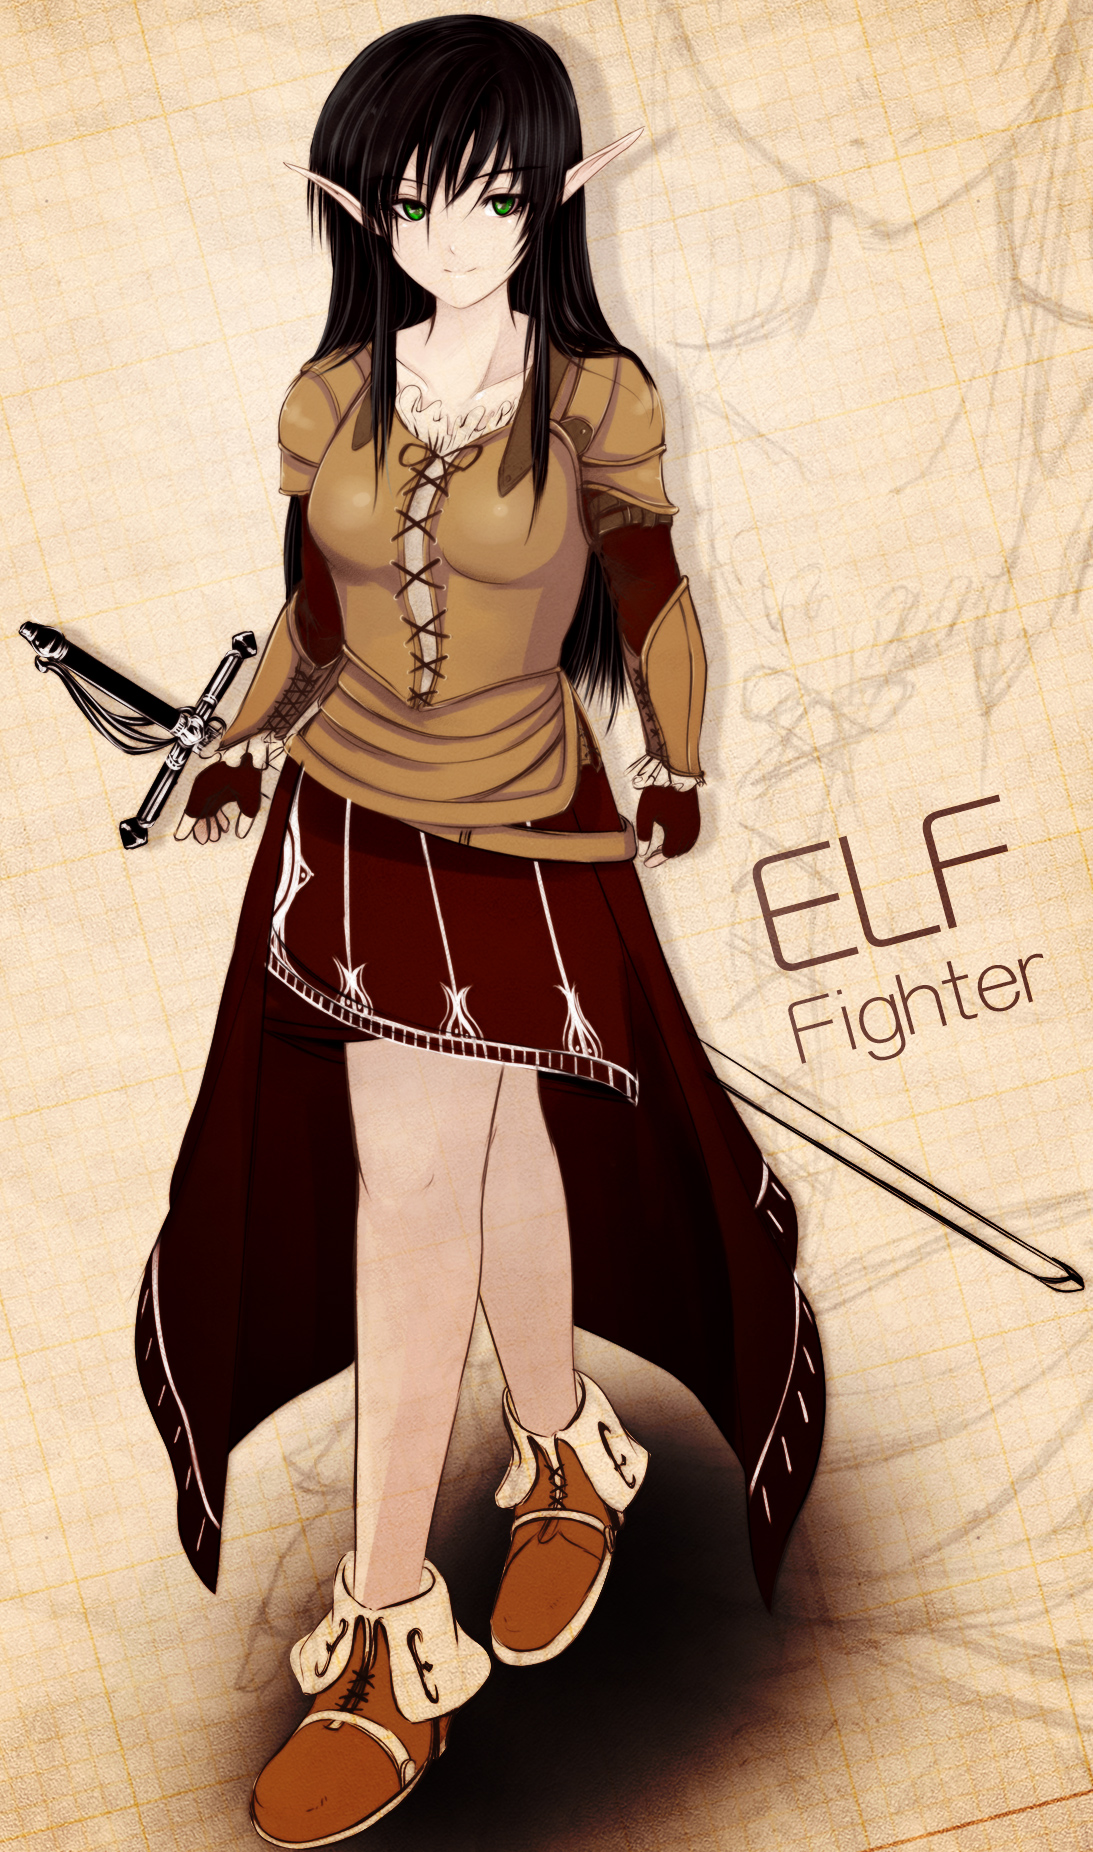 Elf Female Warrior